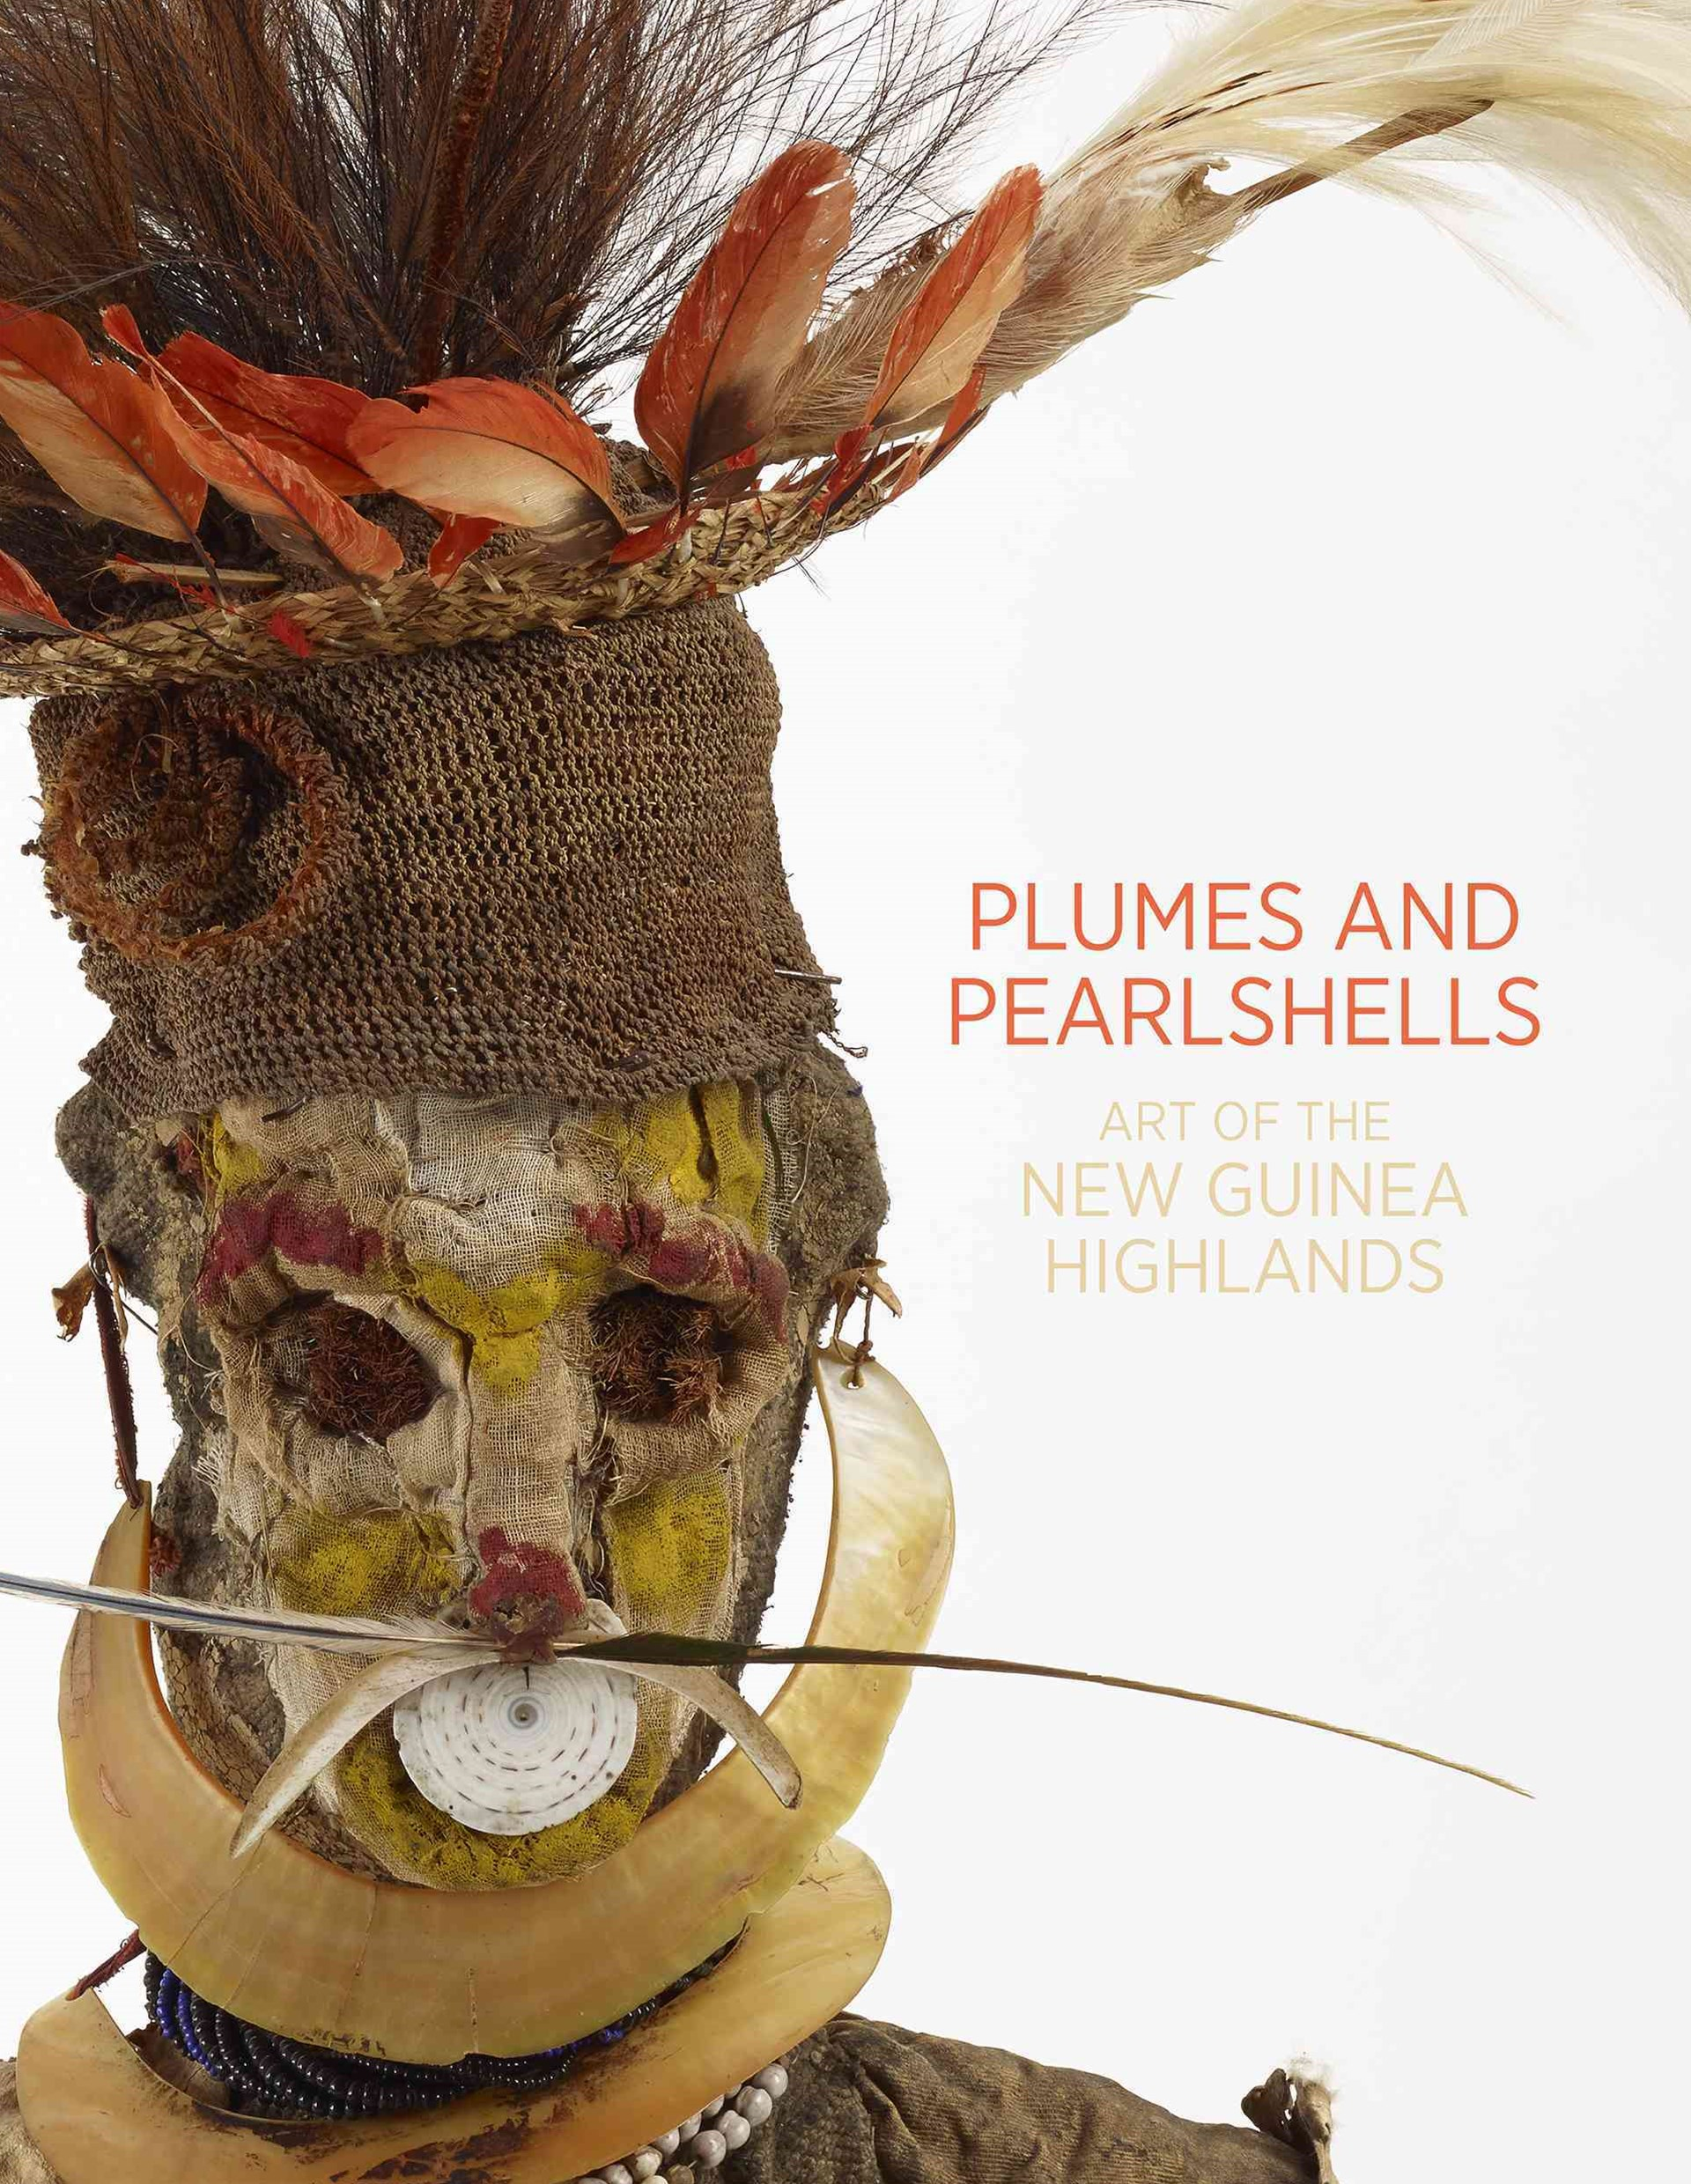 Plumes and Pearlshells: Art of the New Guinea Highlands